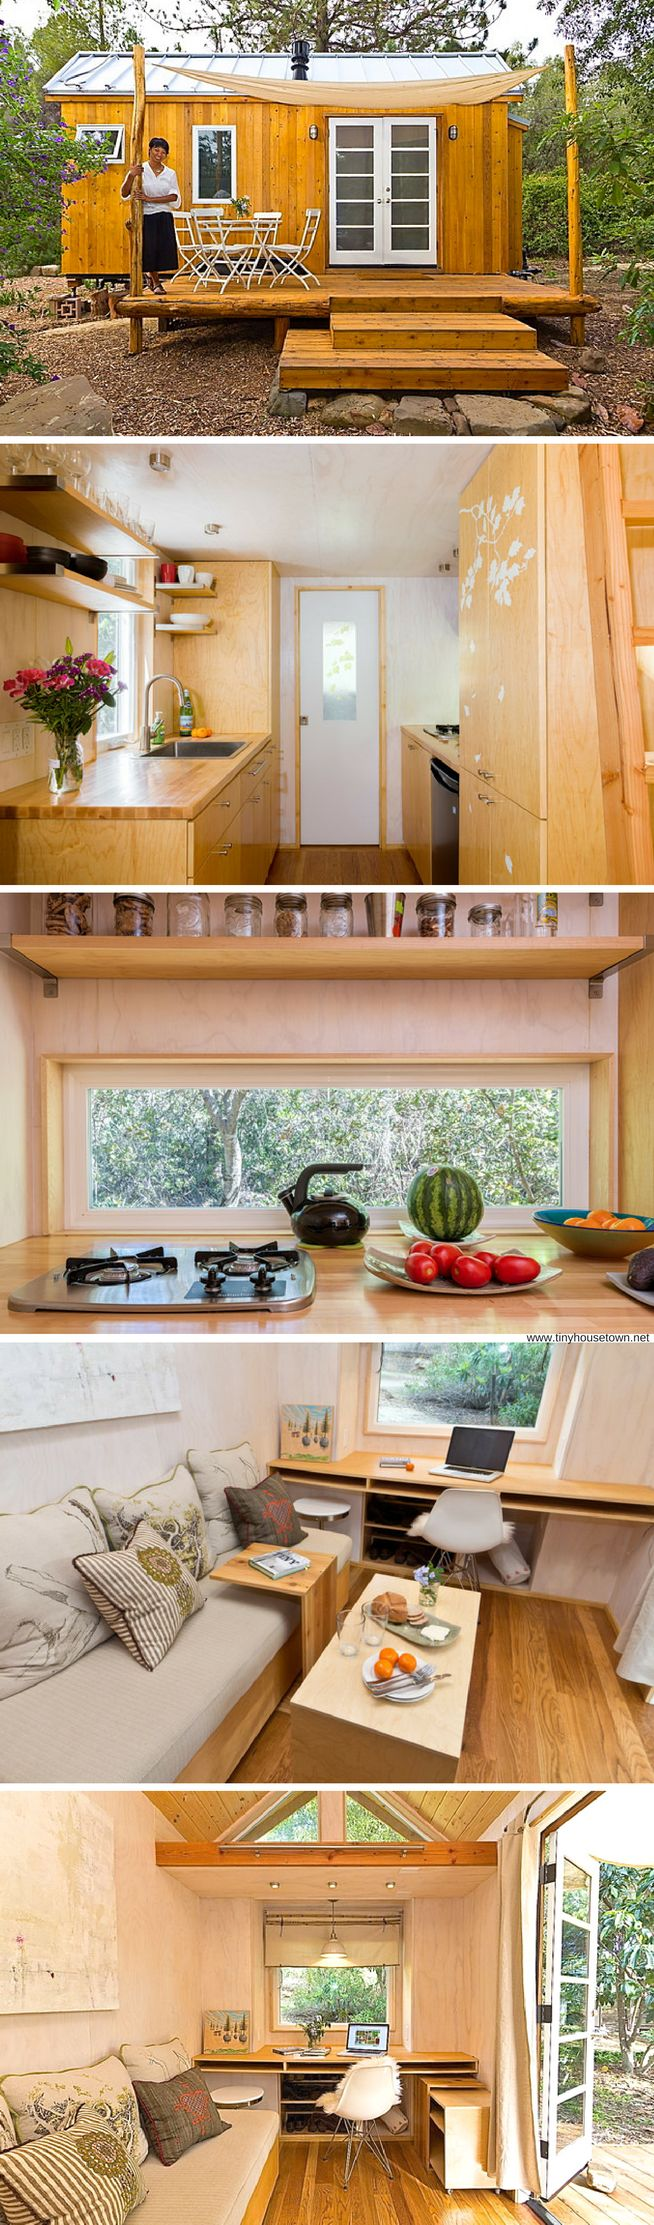 Vina's Tiny House: a 140 sq ft home in California with an eco-friendly footprint